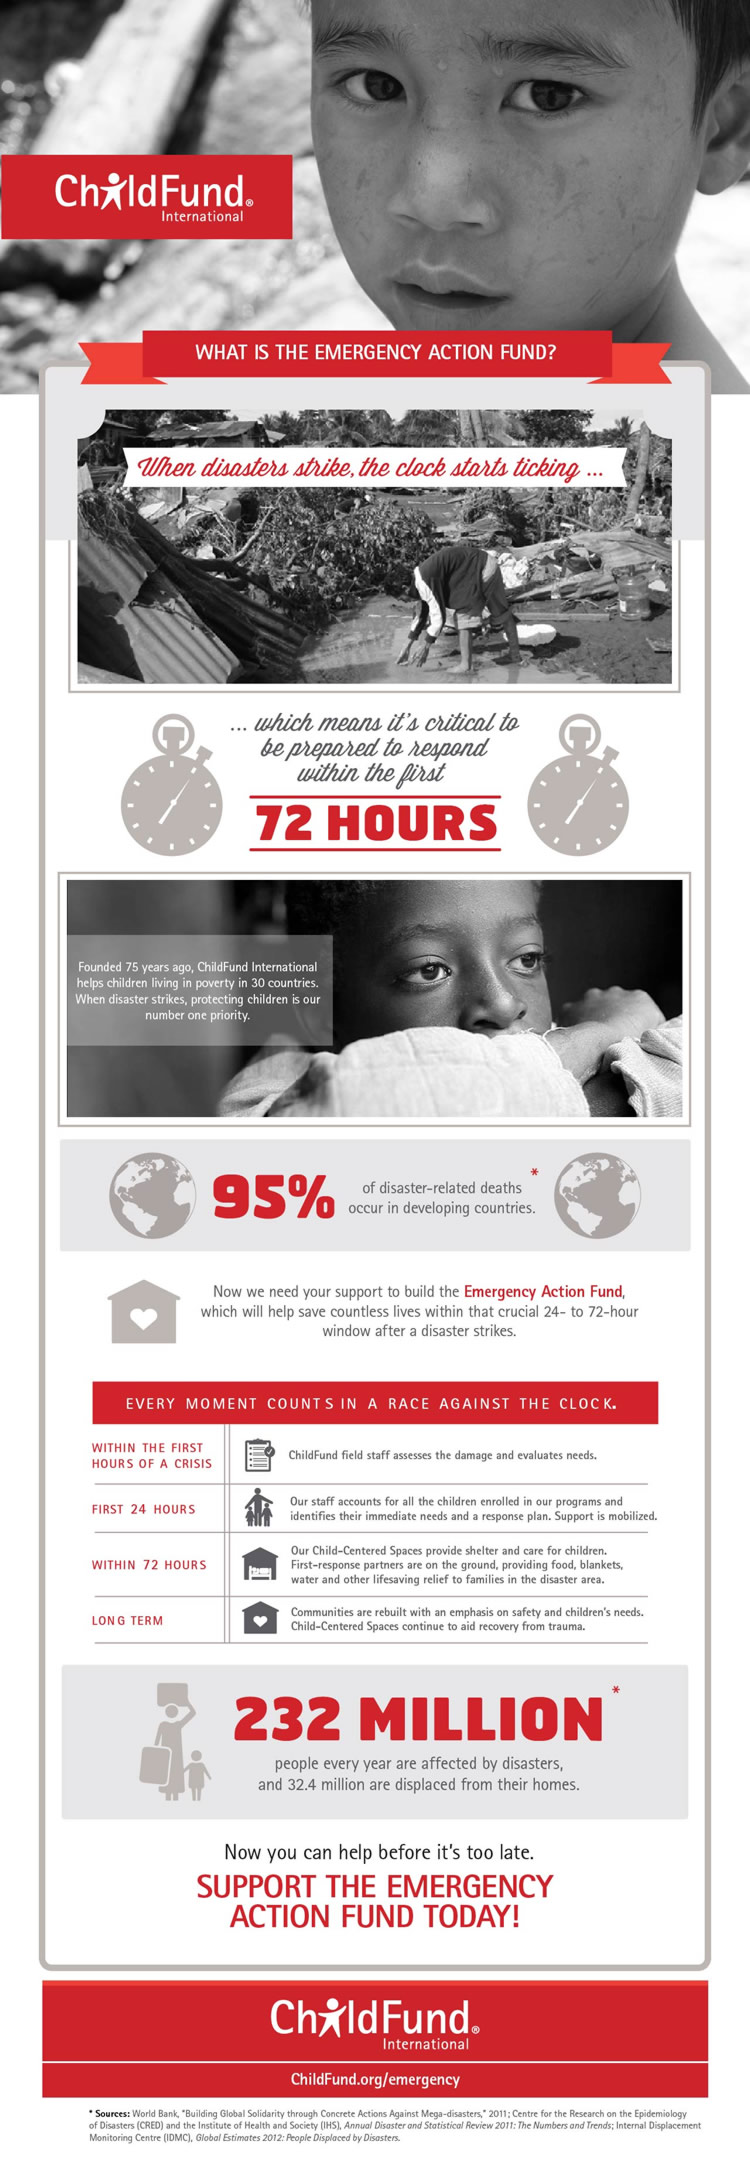 childfund-emergency-action-fund-info-graphic_5239bde64067c.jpg